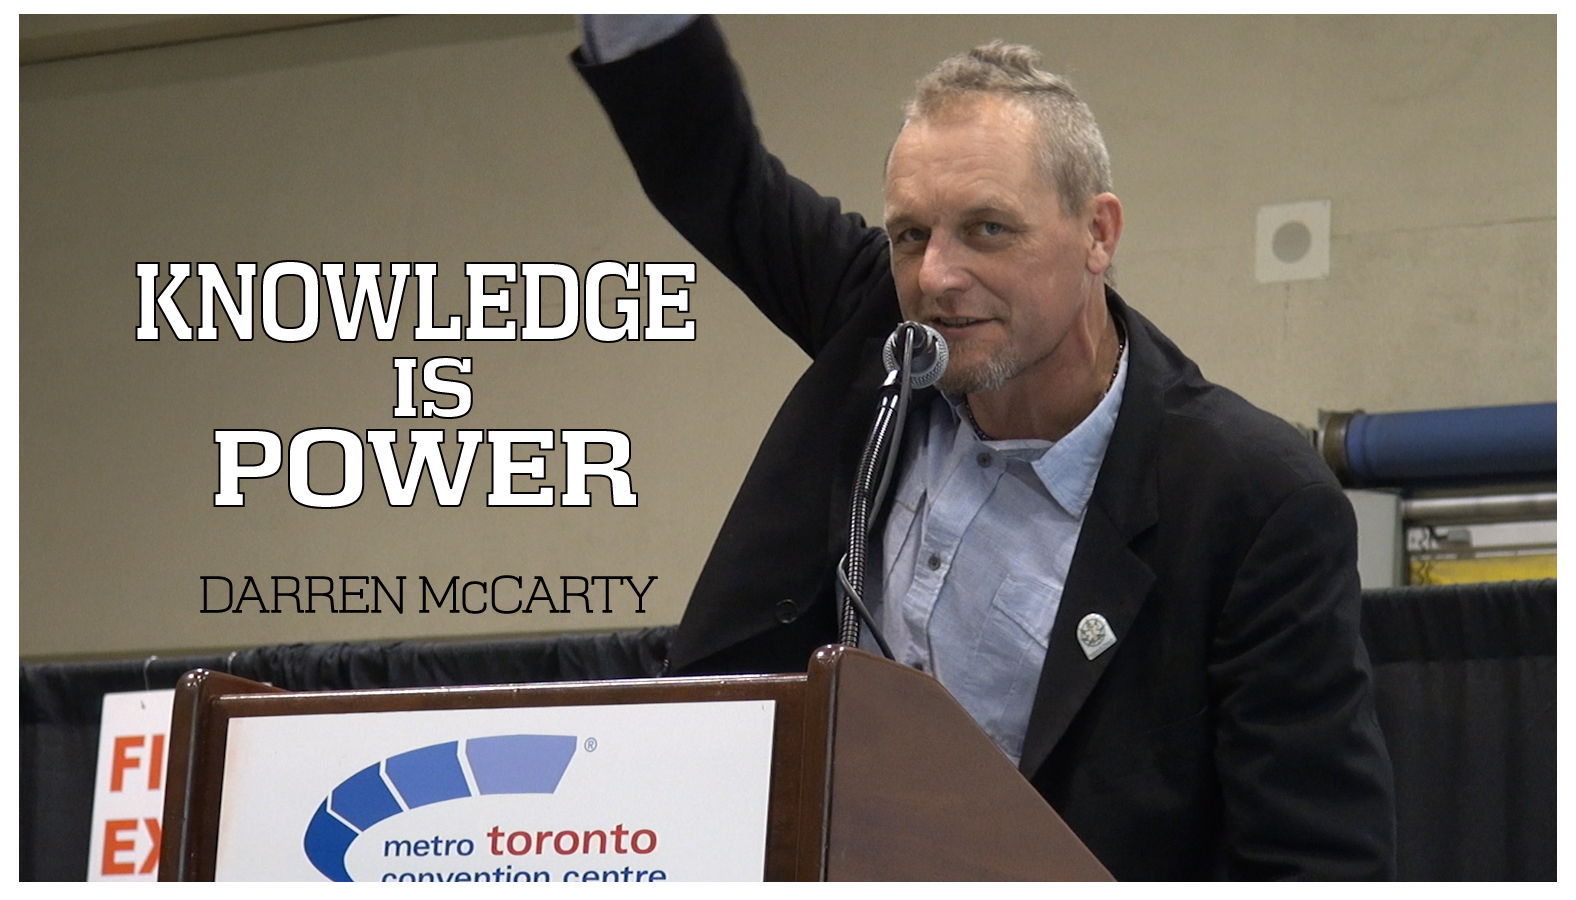 Darren-McCarty-knowledge-is-power